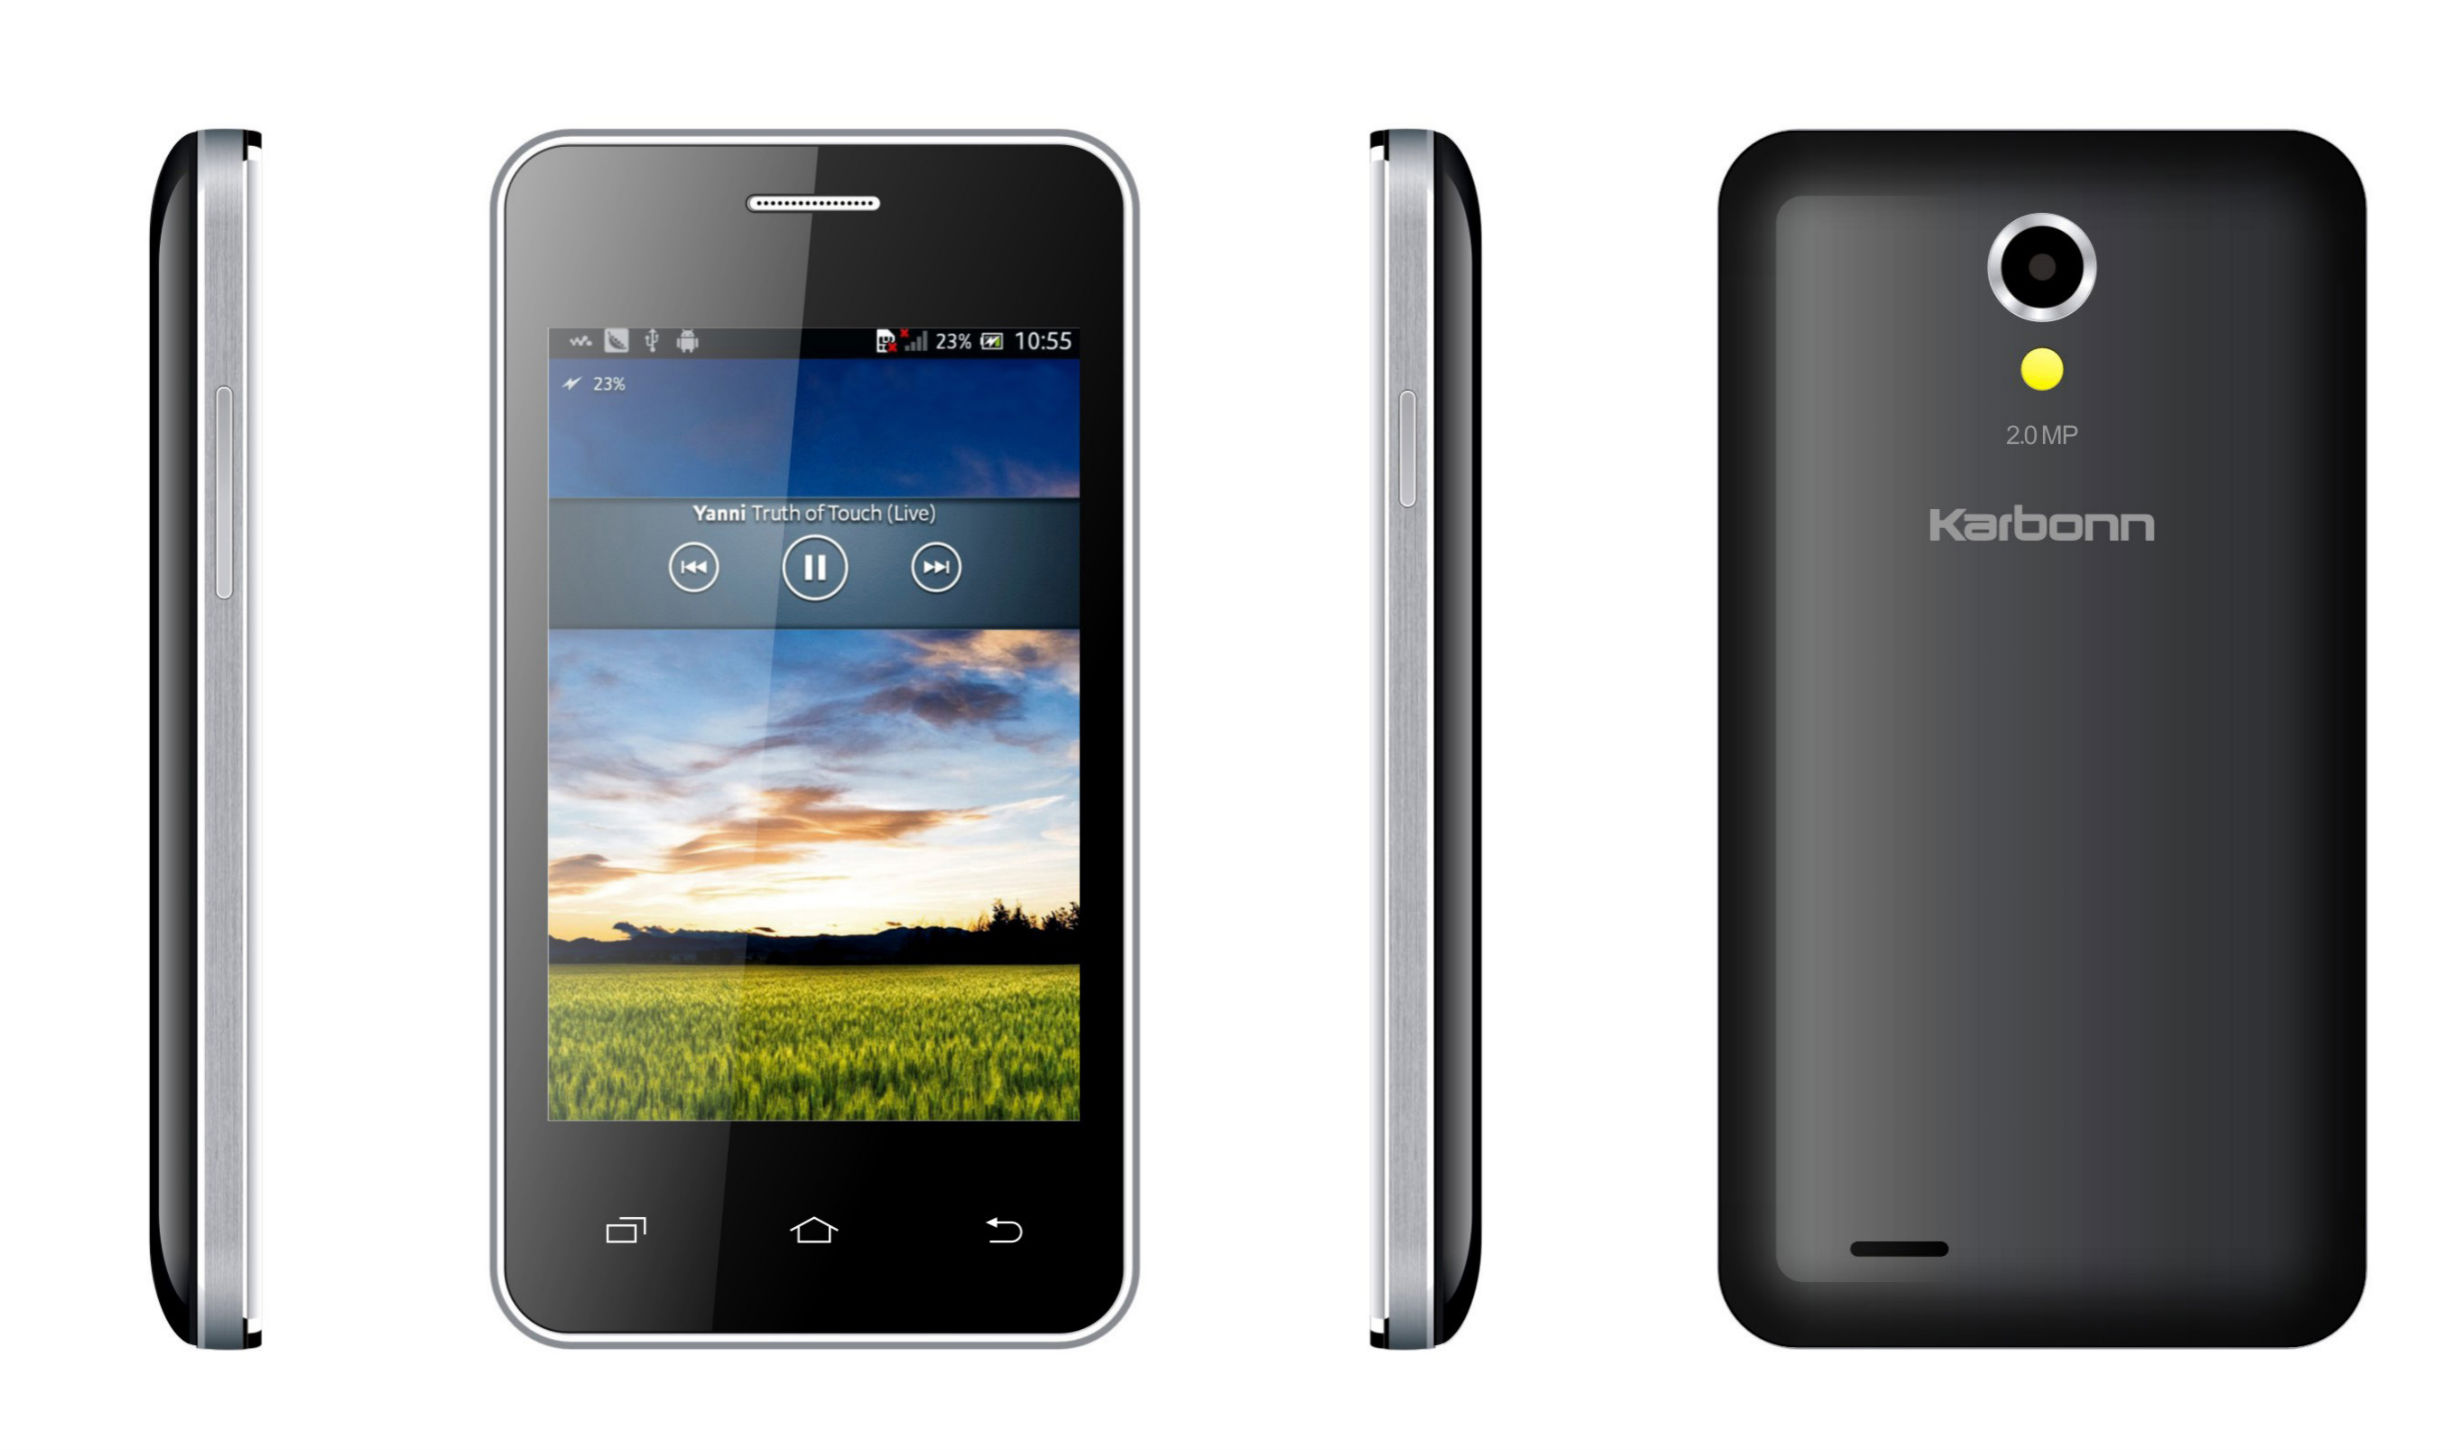 Phone Karbonn All Android Phone flipkart teams up with karbonn to launch smartphones a50s phone picture1